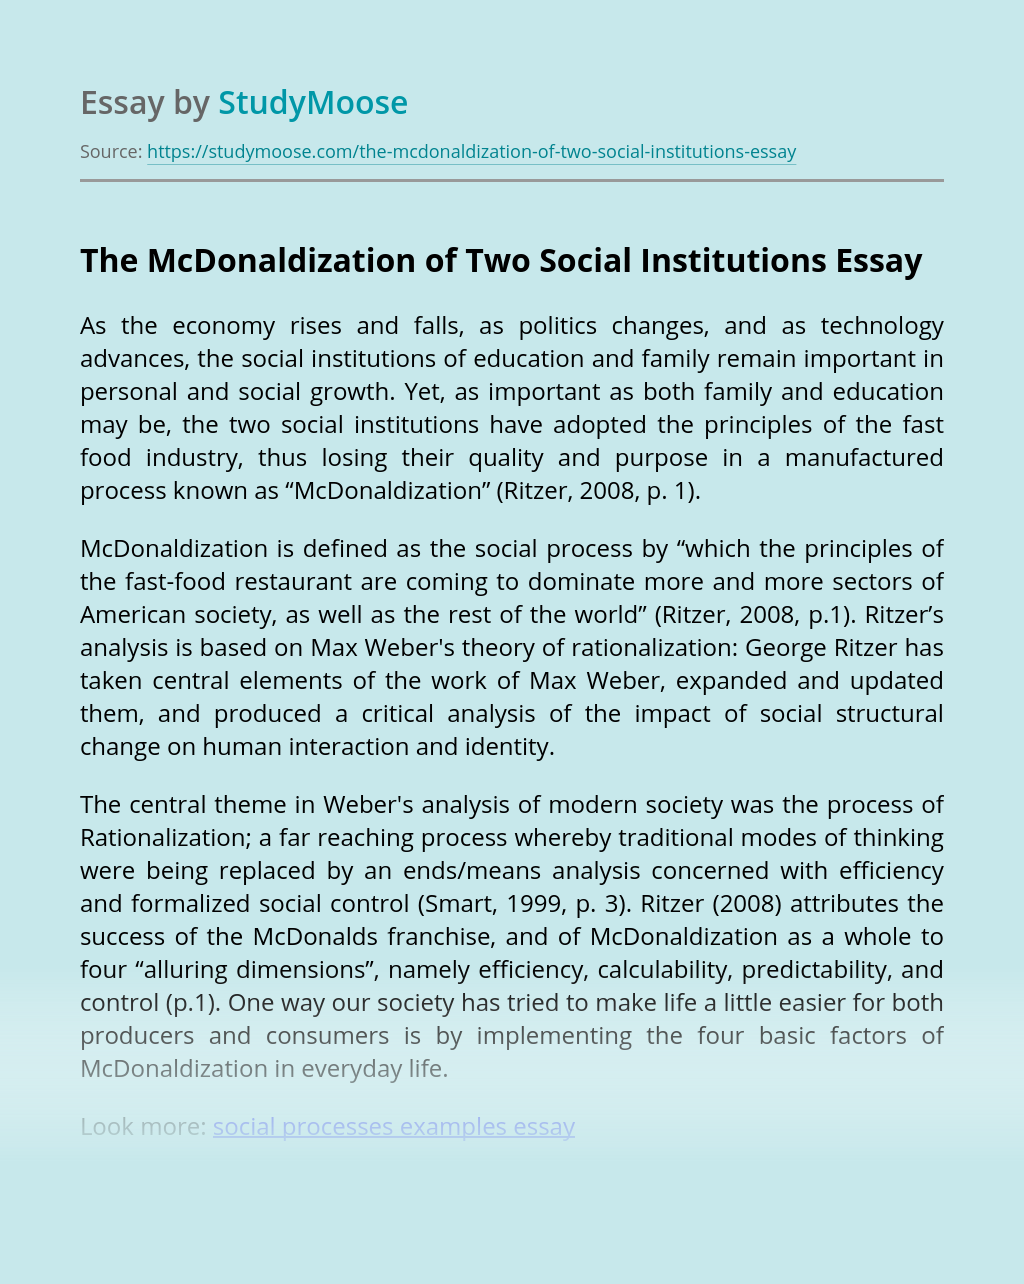 The McDonaldization of Two Social Institutions